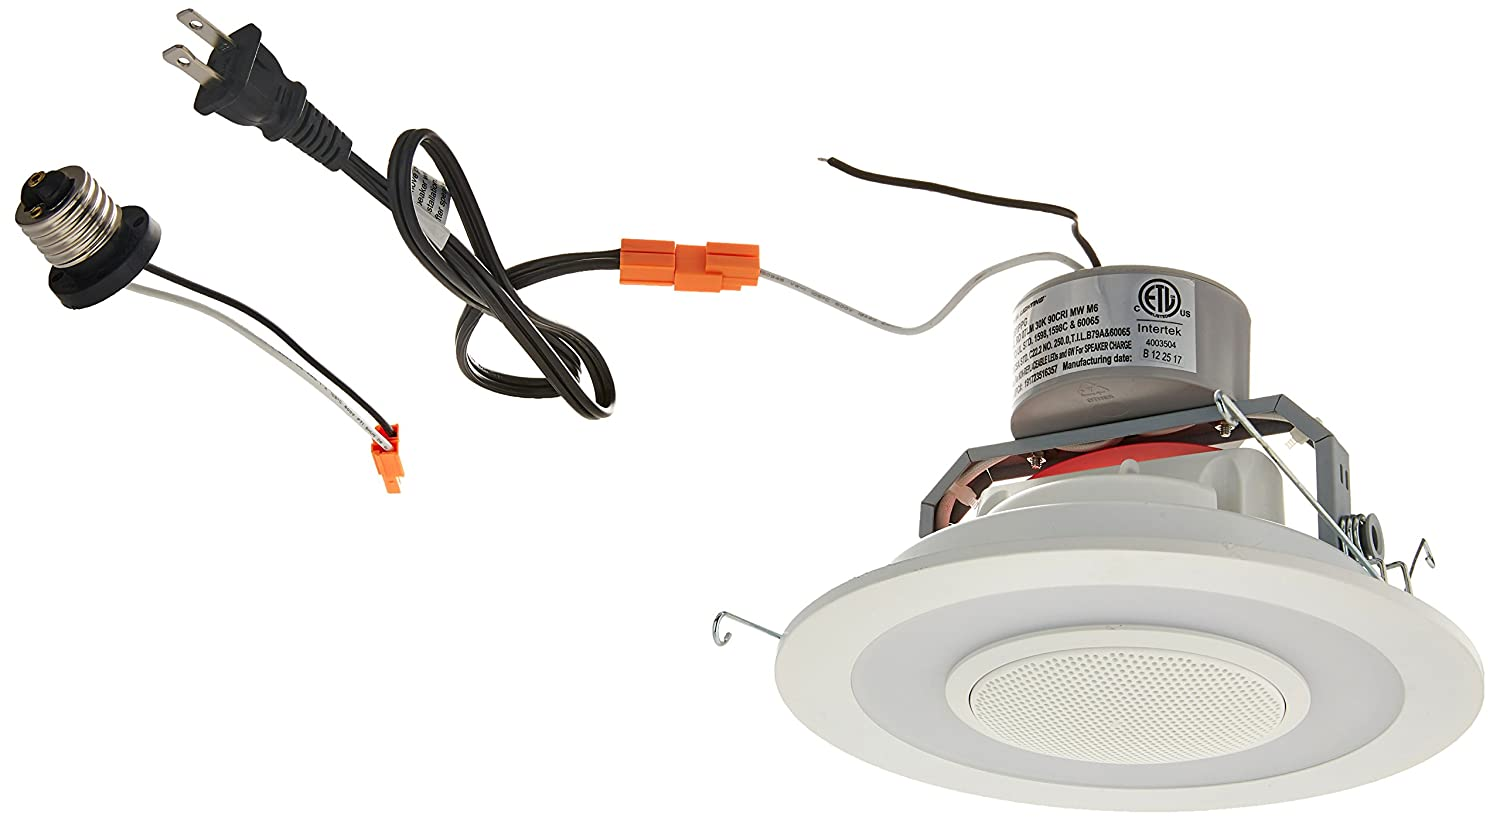 Lithonia Lighting 6SL RD 07LM 30K 90CRI MW M6 6 Dimmable LED Retrofit Module with Integrated Bluetooth Speaker, 3000K|Bright White, Matte White Lithonia Acuity 260V5L